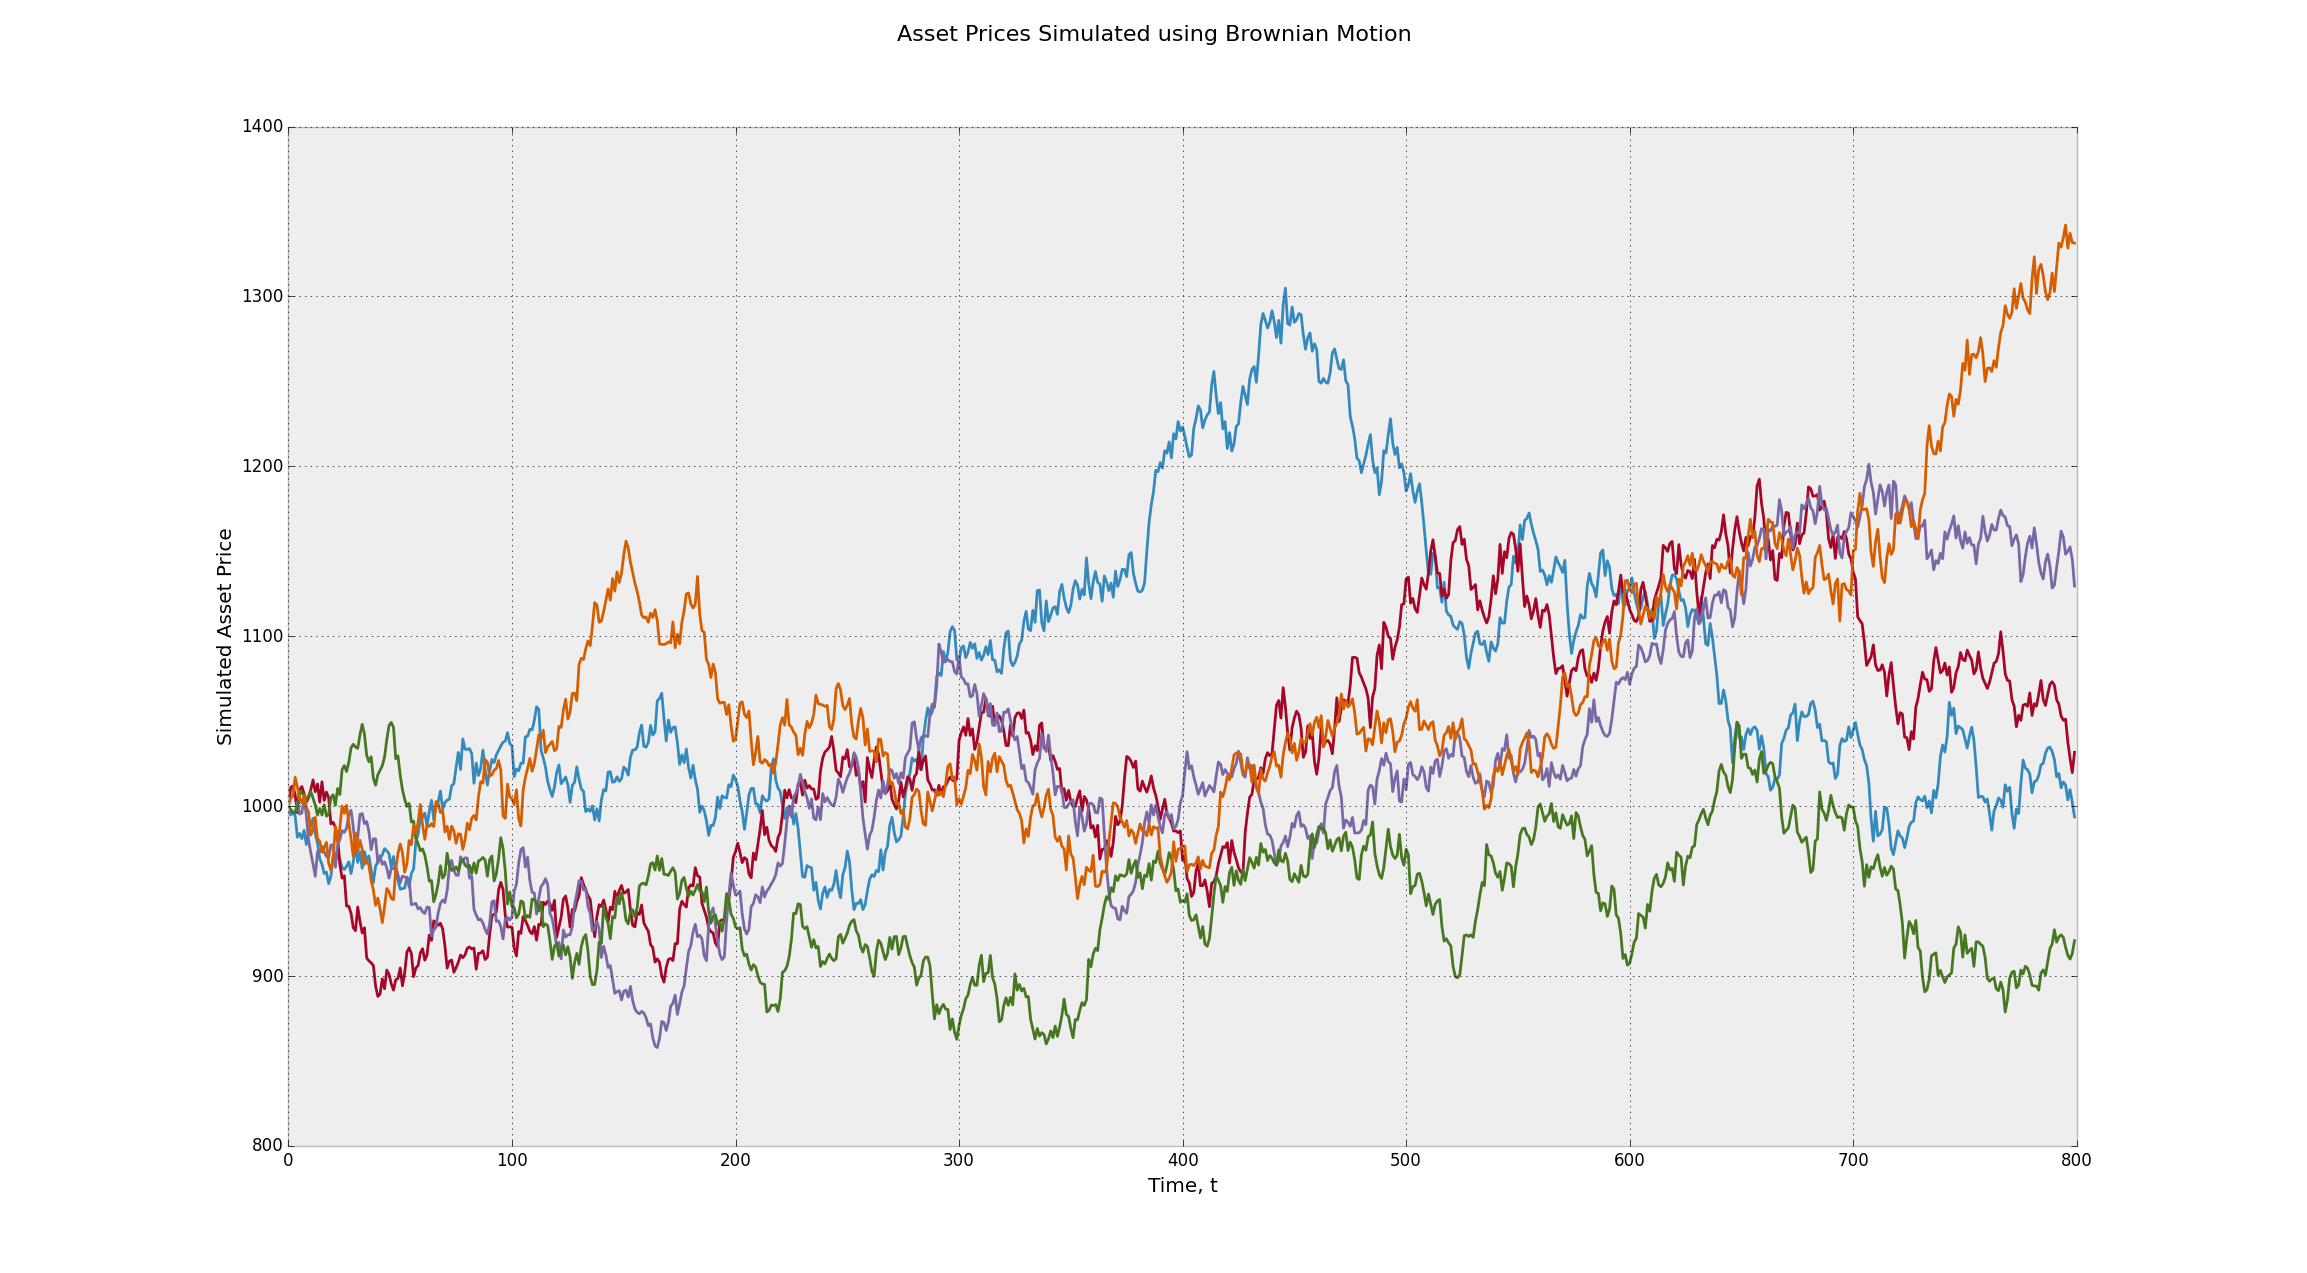 Asset Prices Simulated using the Brownian Motion Stochastic Process